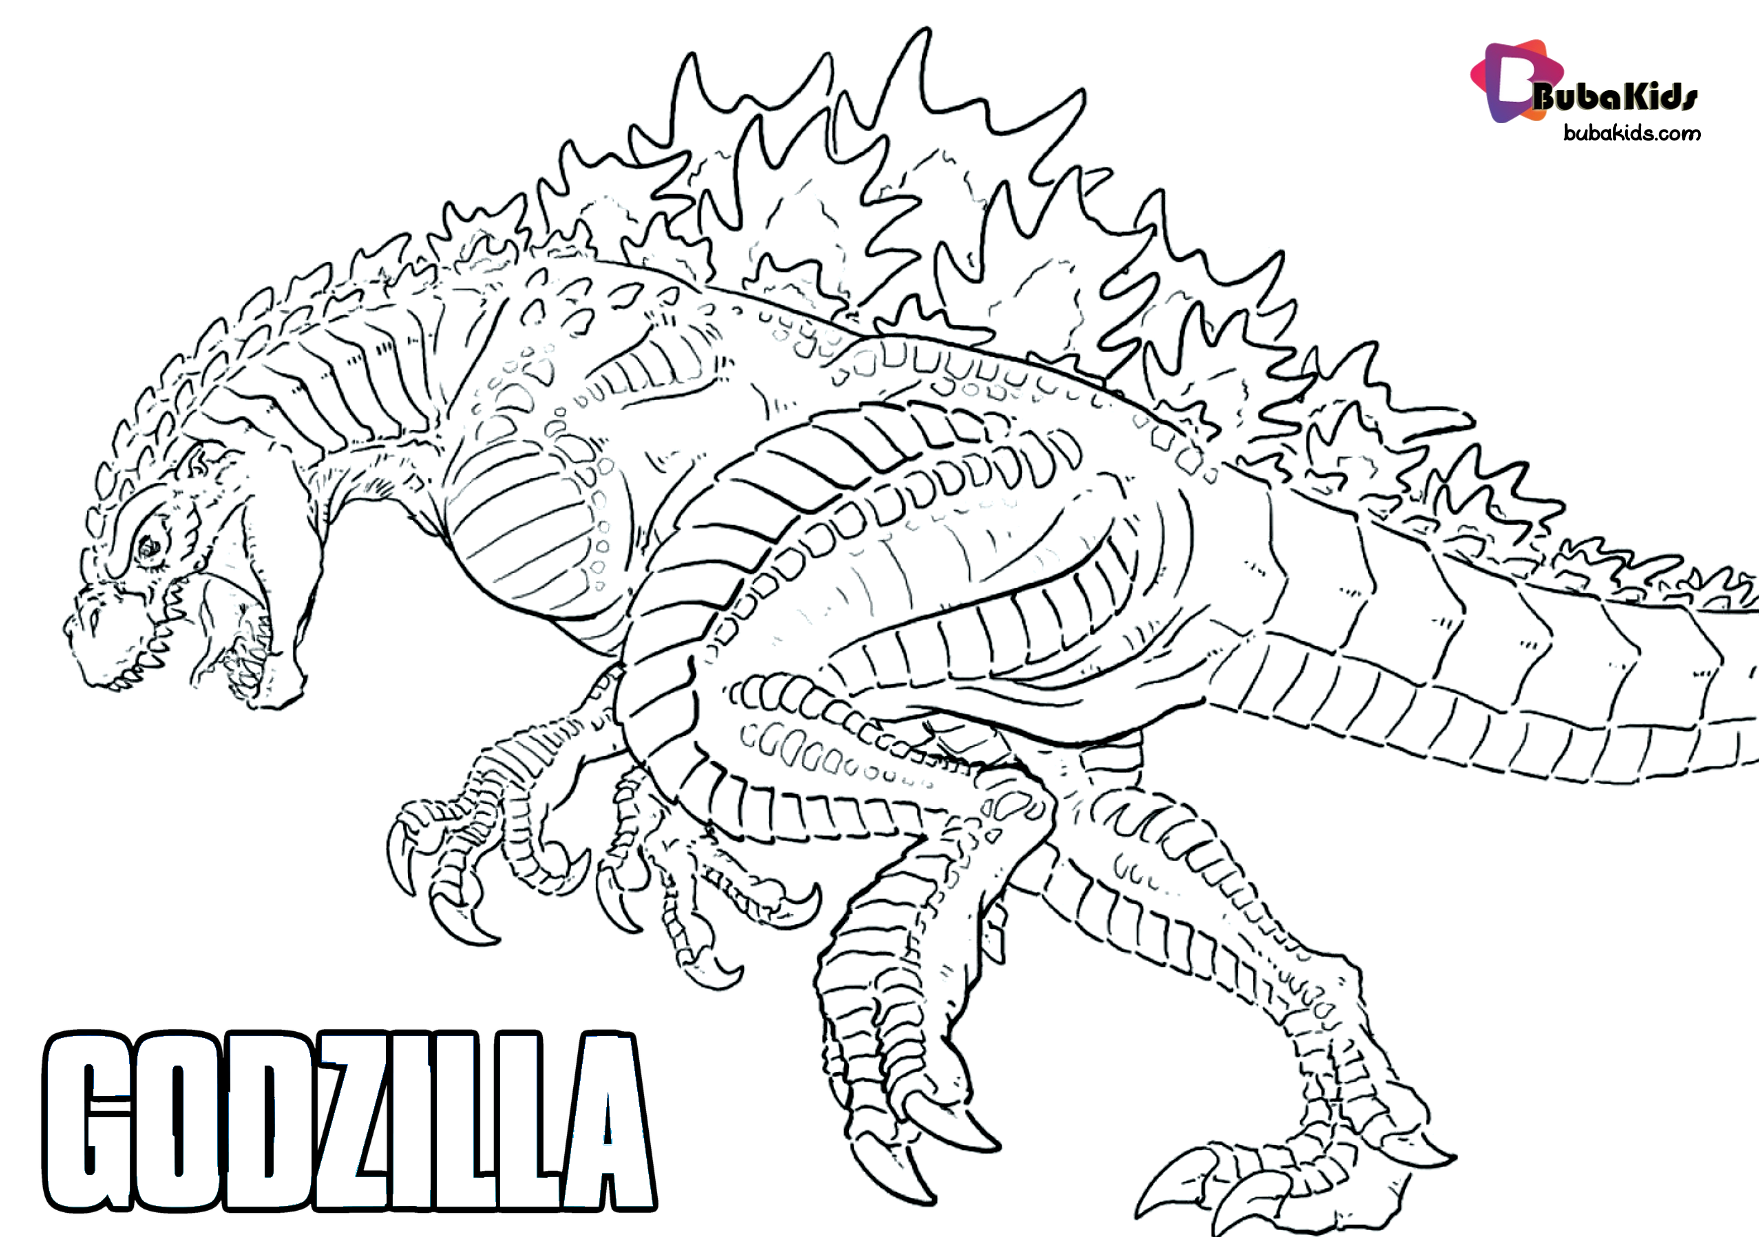 Godzilla King Of Monsters Free Printable Coloring Page Bubakids Com Godzilla Bubakidscom Godzil Cartoon Coloring Pages Coloring Book Pages Coloring Pages